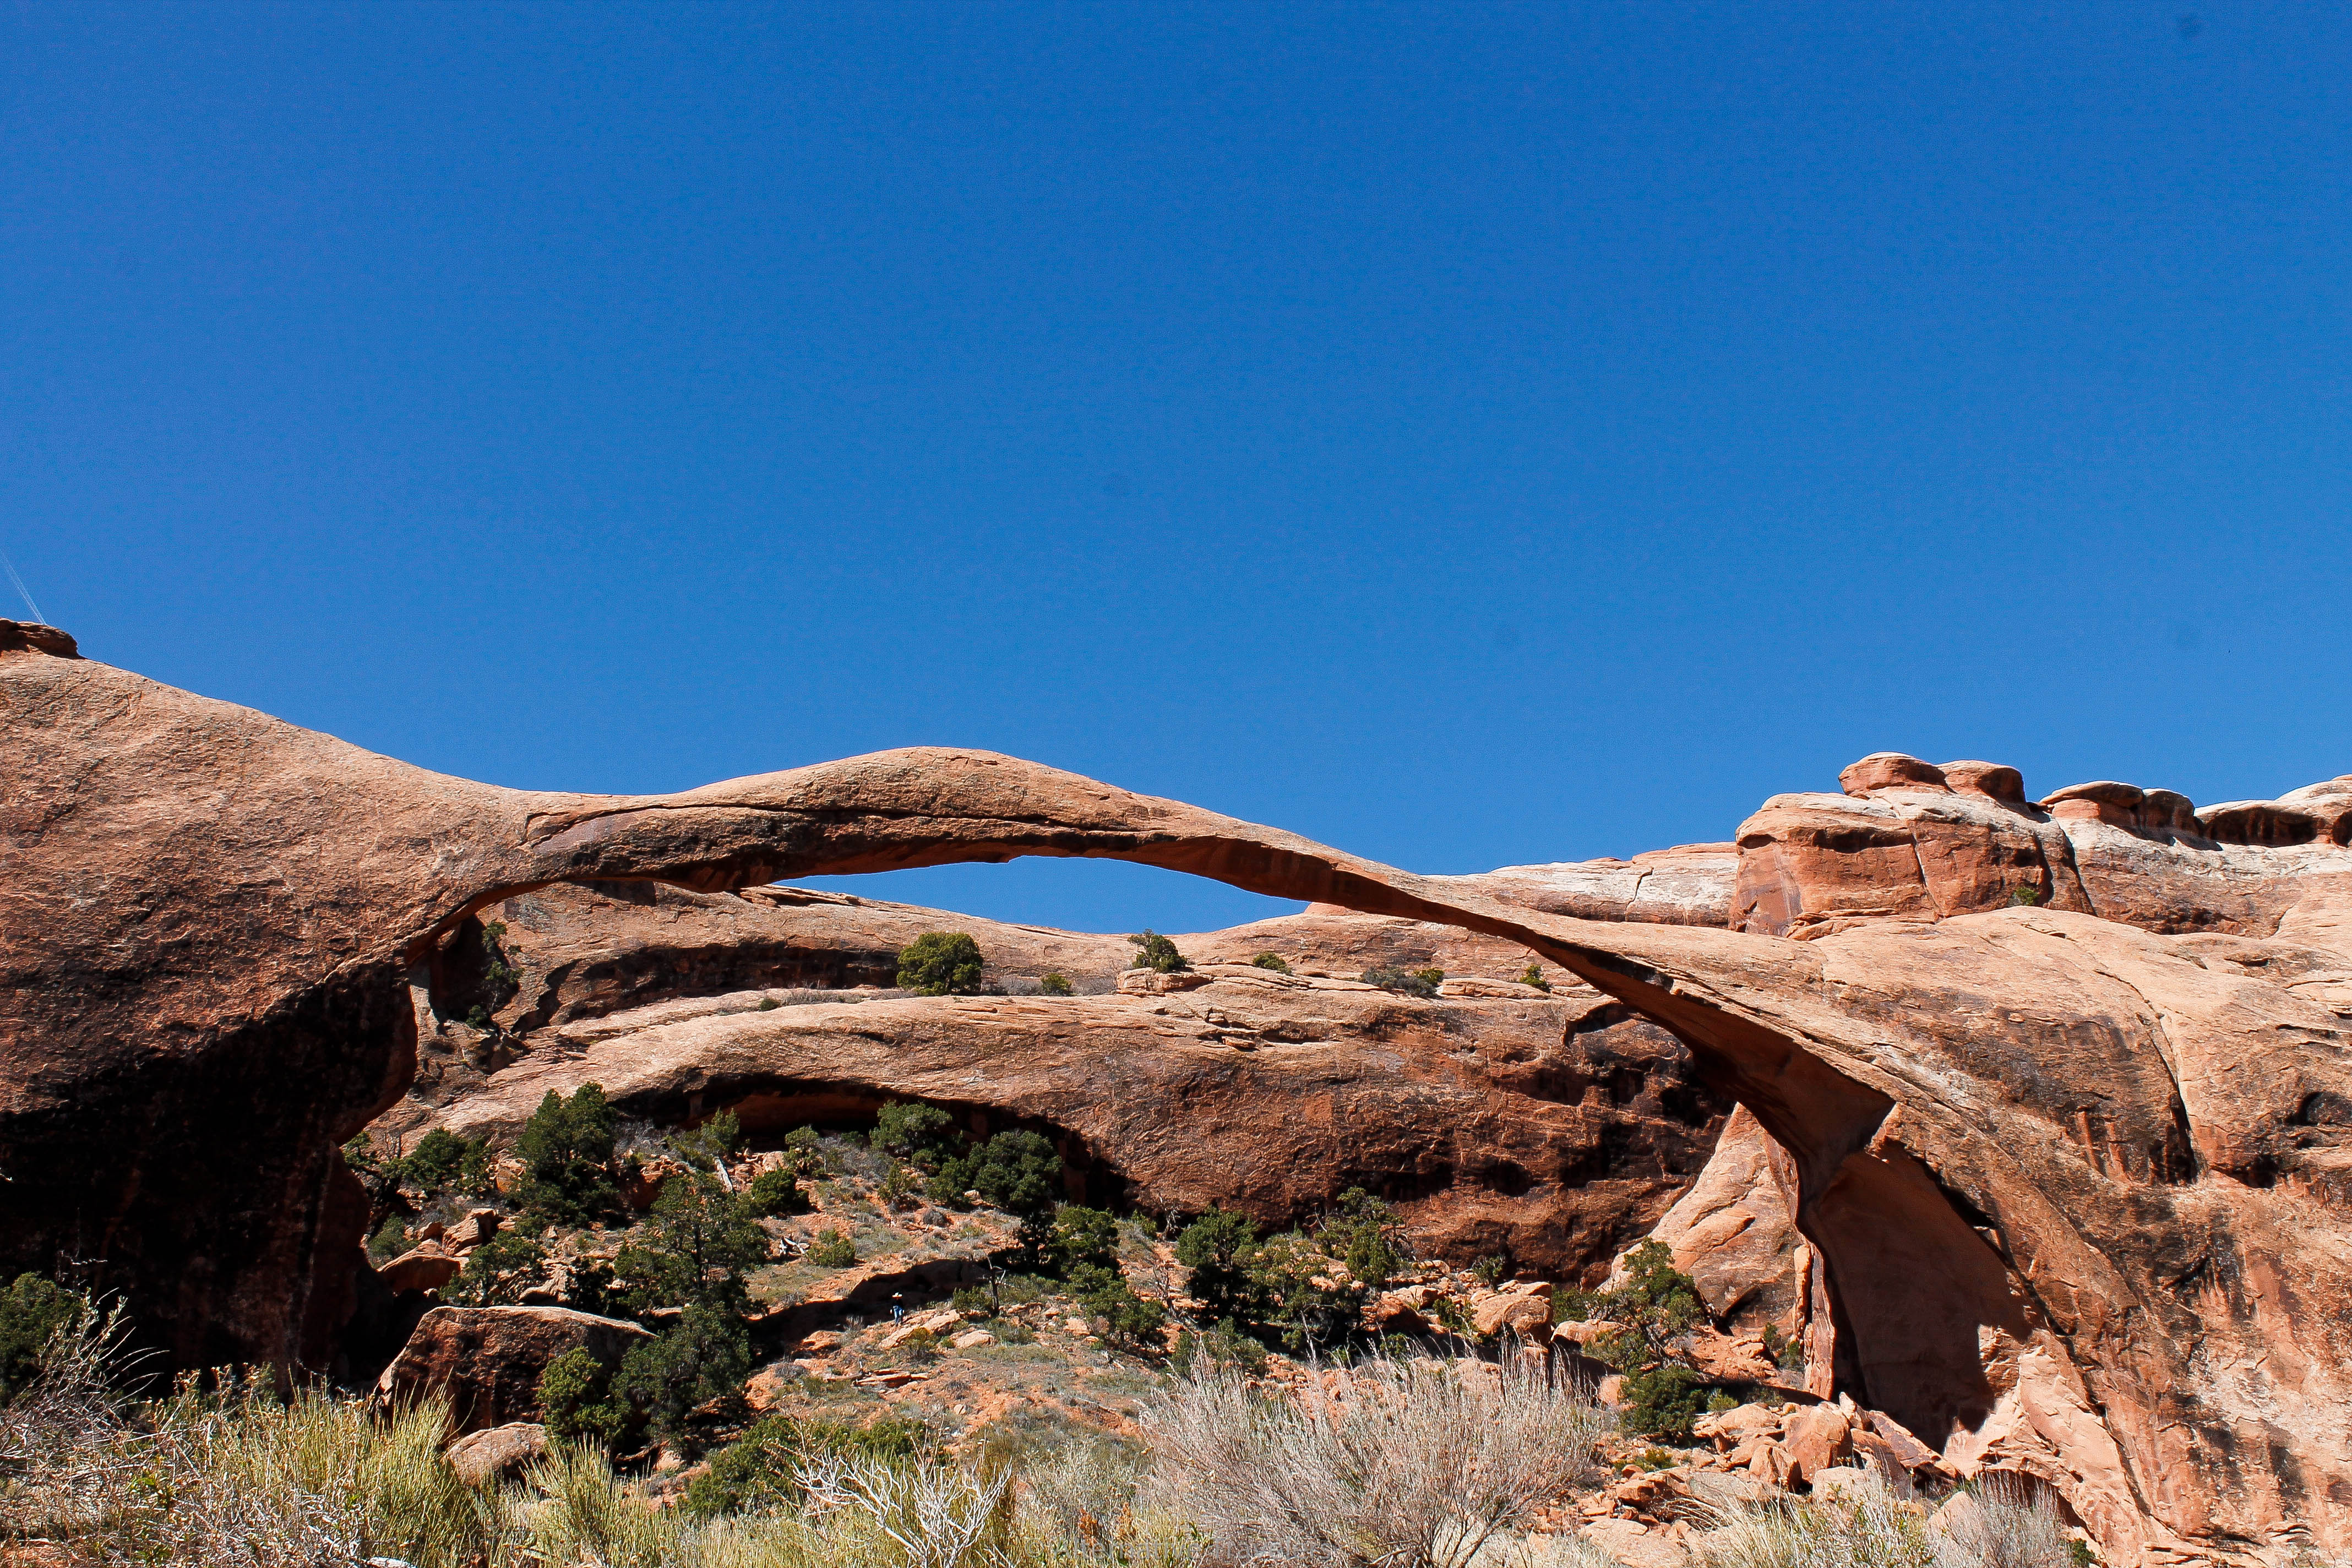 Landscape Arch in Arches National Park